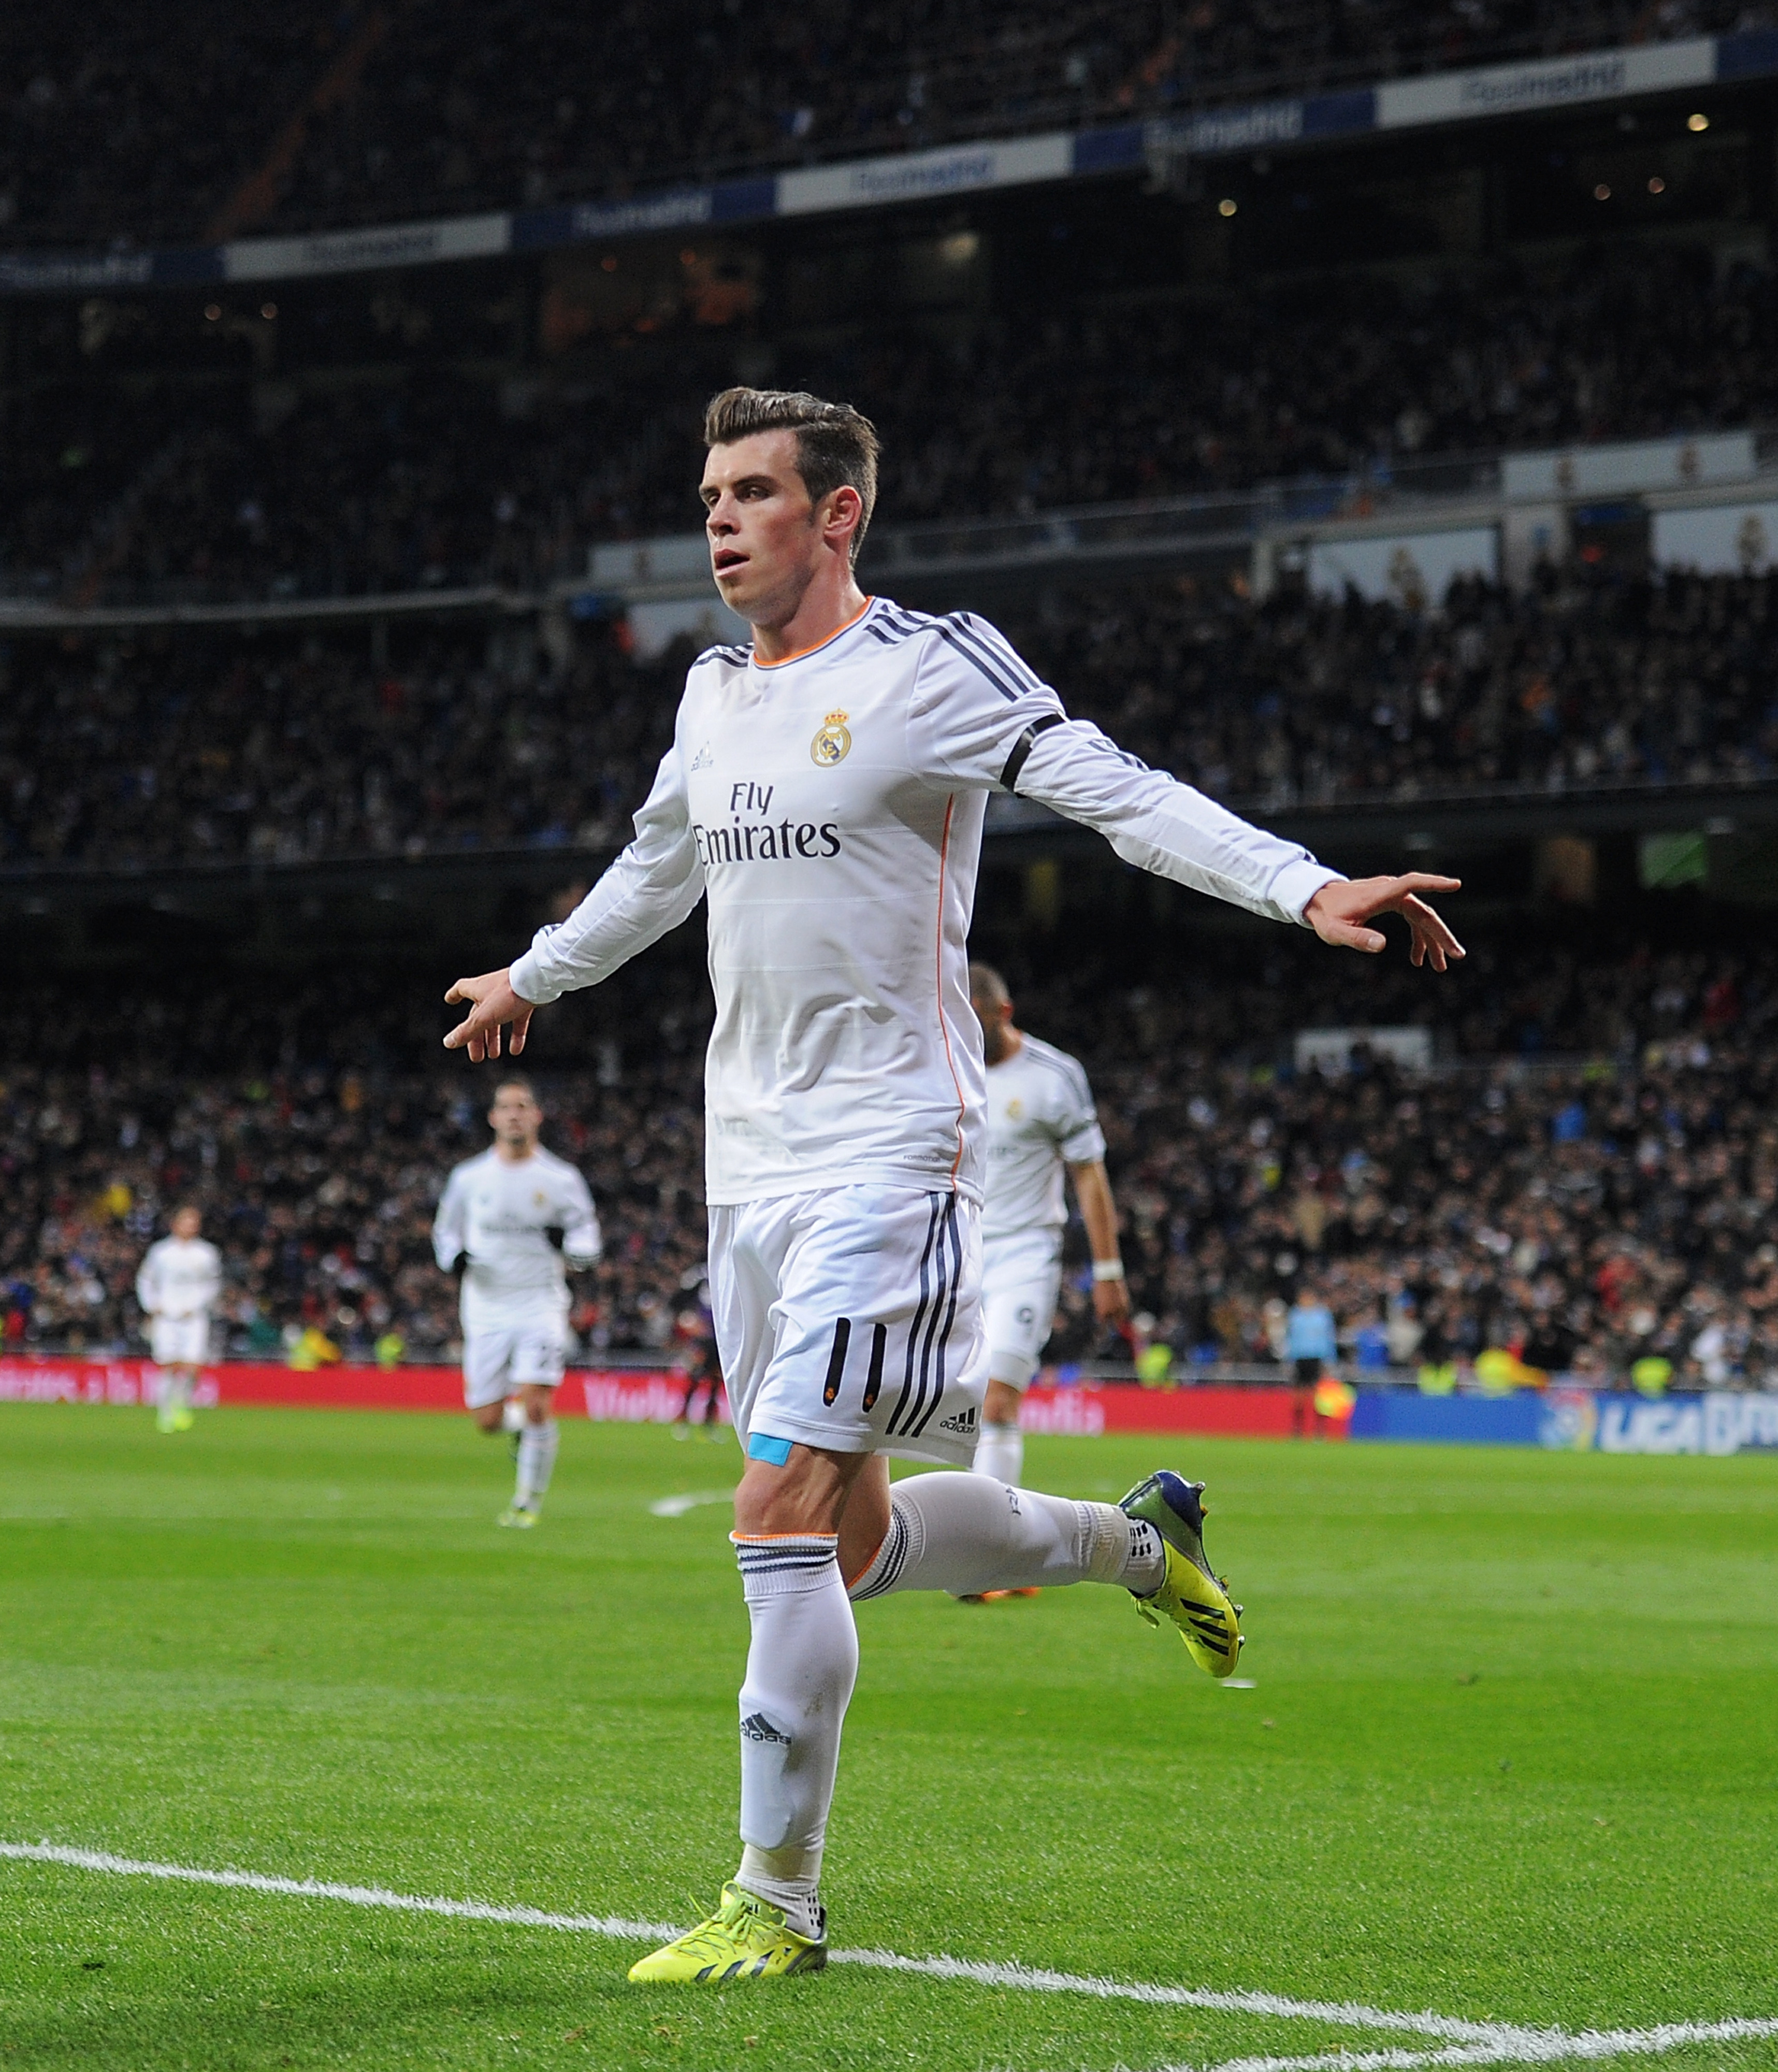 Real Madrid vs. Real Valladolid: Final score 4-0, Gareth Bale nets a hat trick